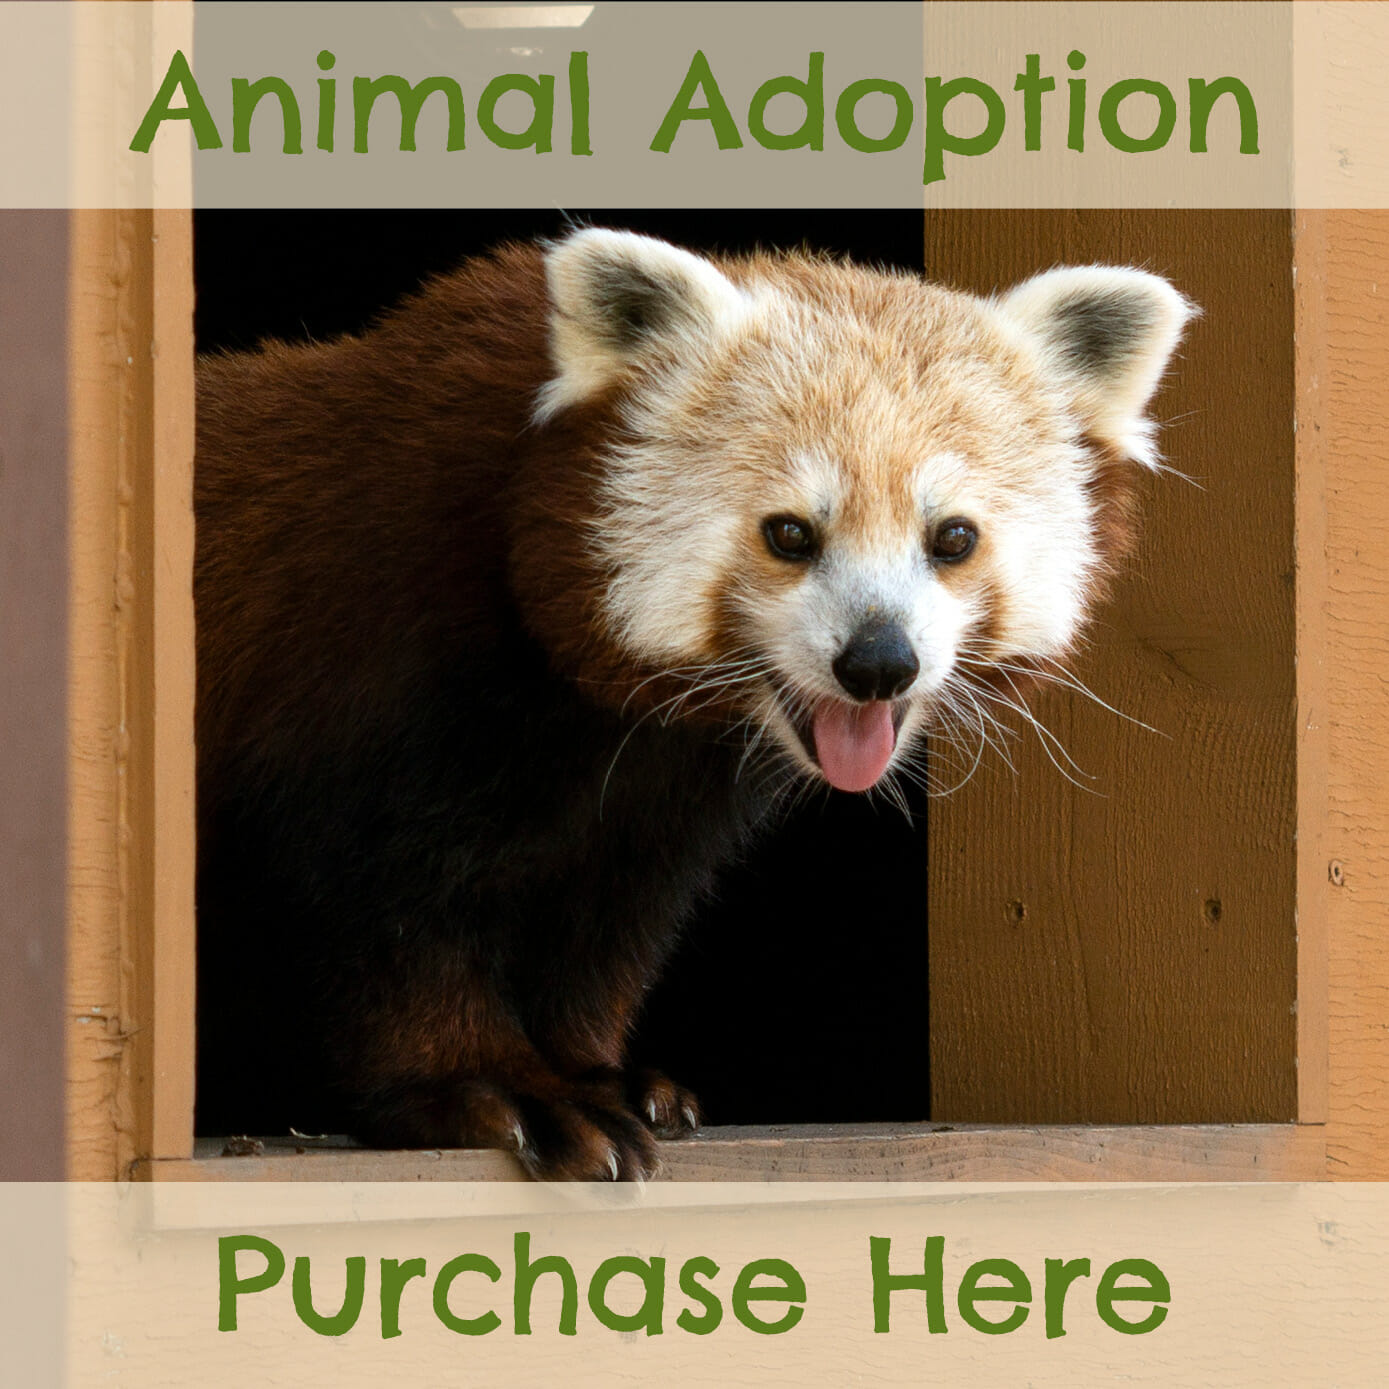 Adopt a Zoo animal here